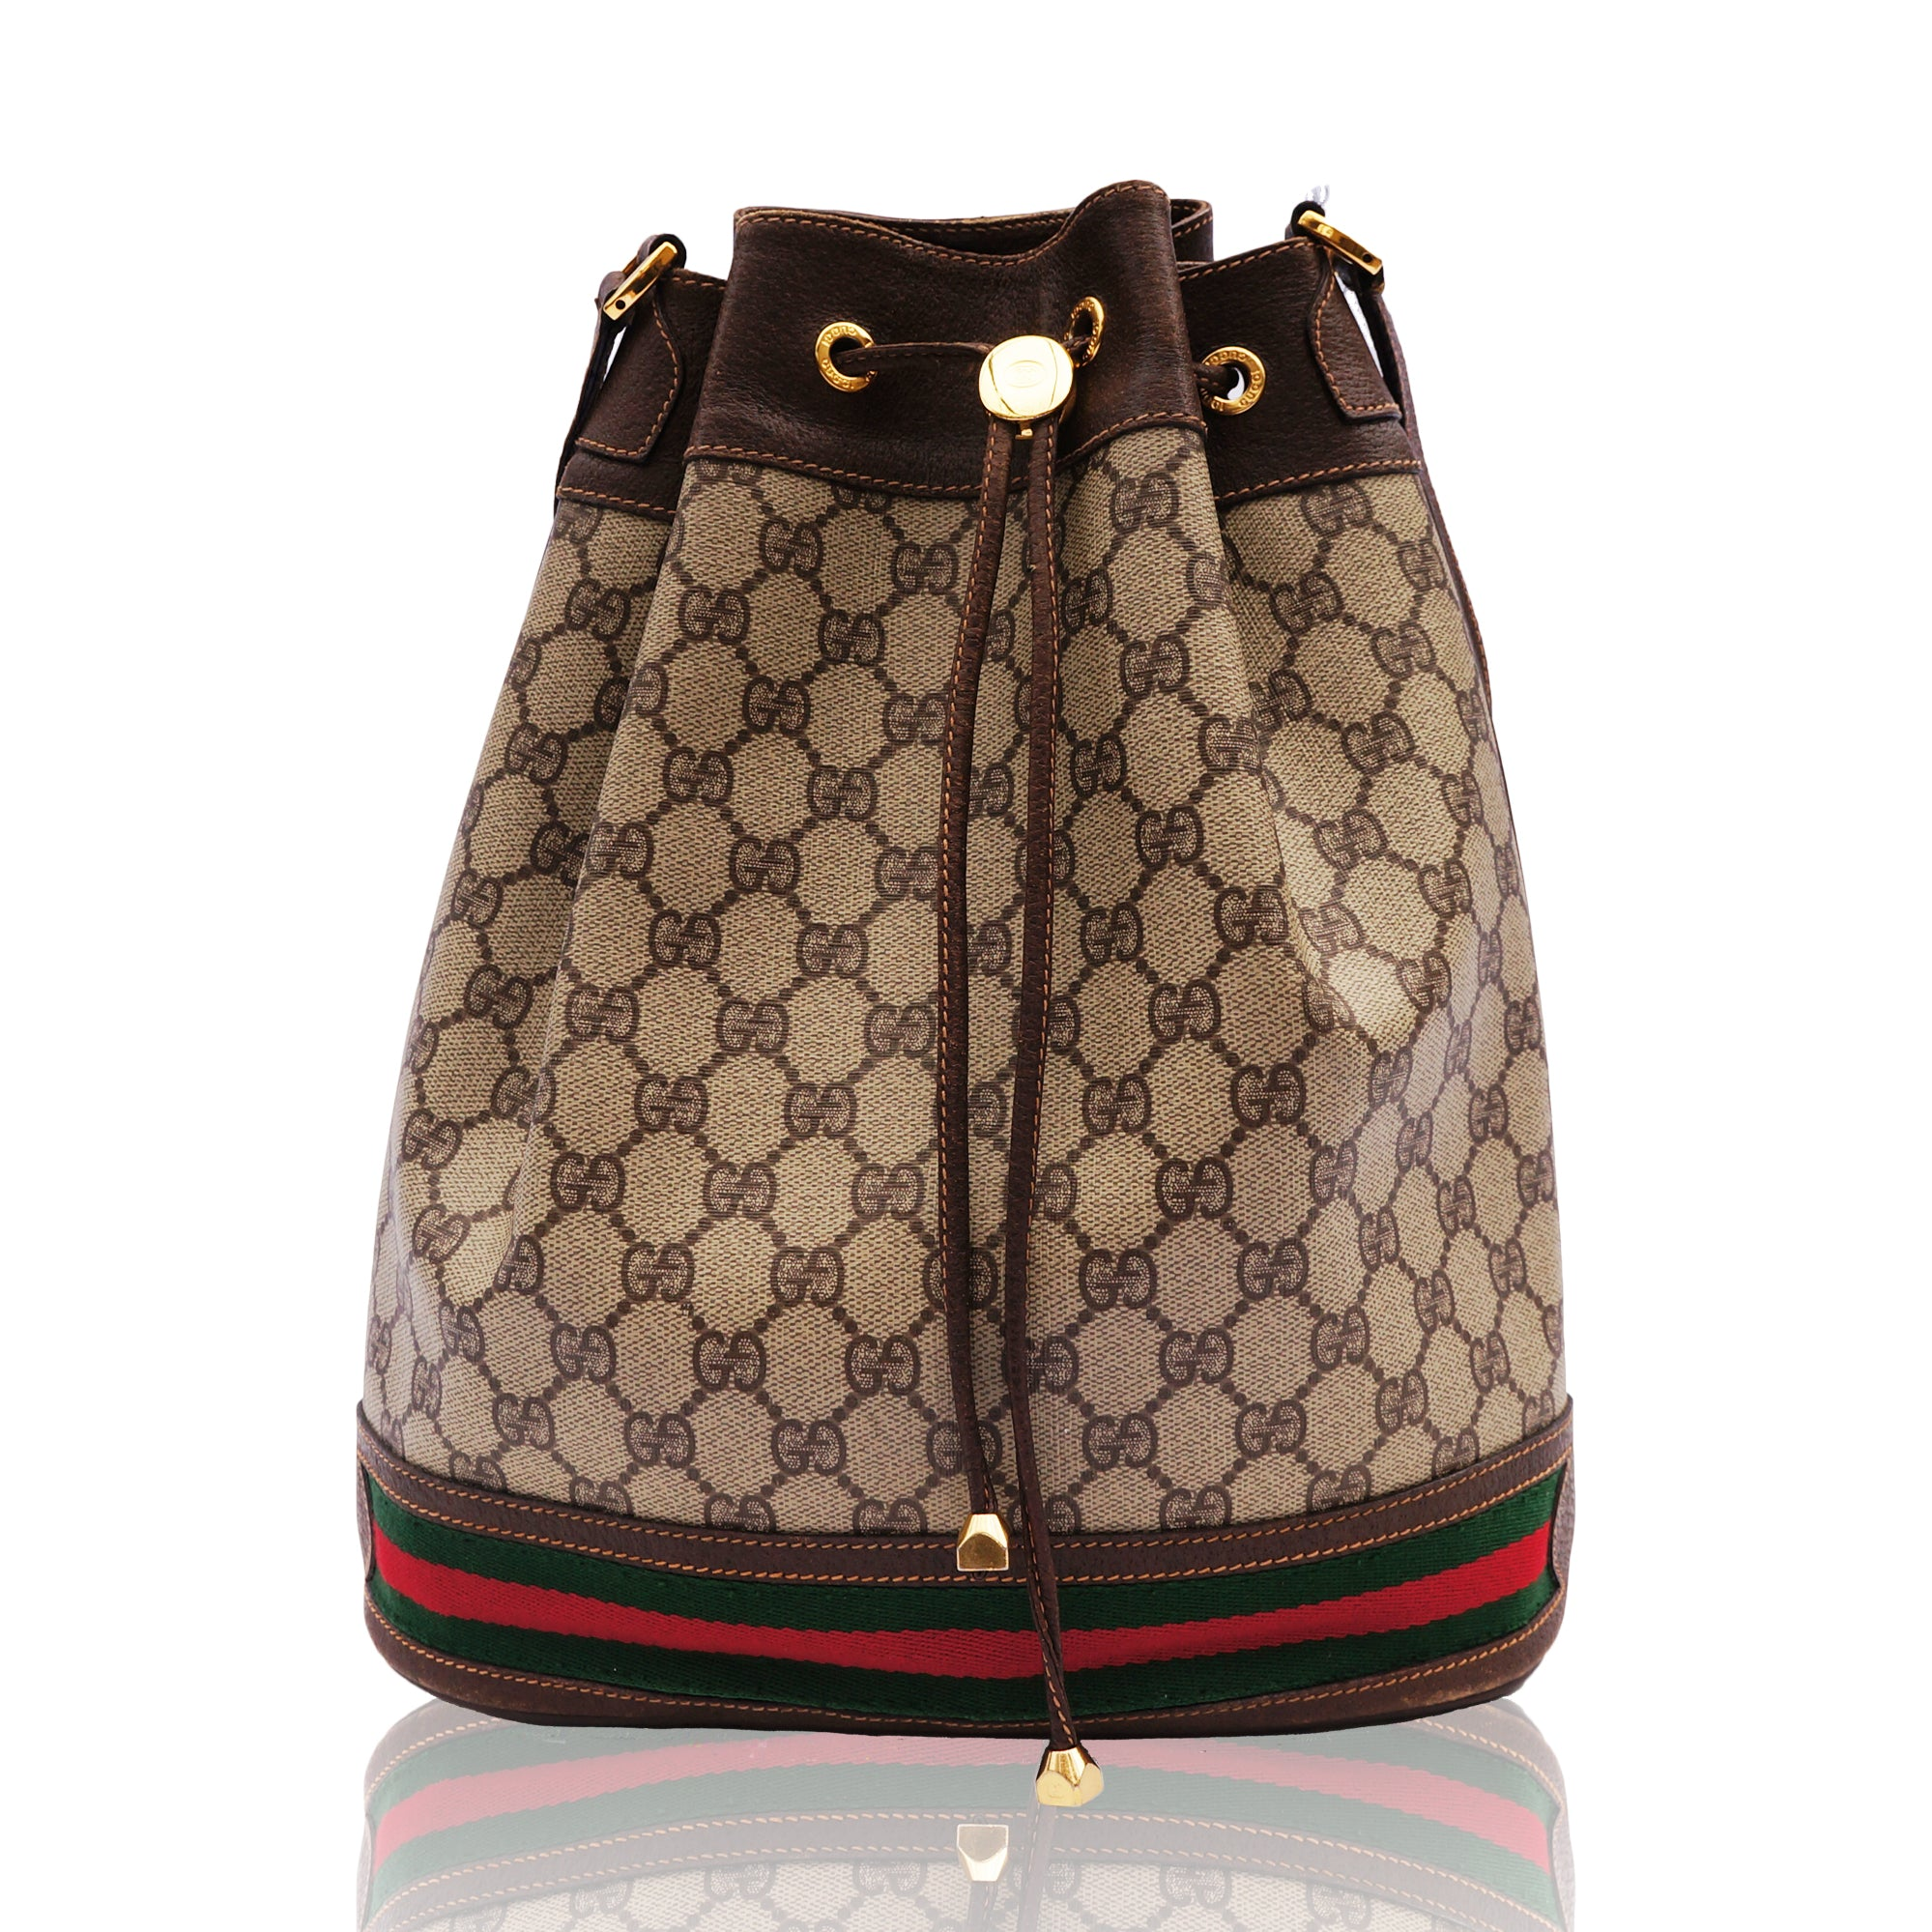 ae44679c8b57b GUCCI WEB SUPREME BUCKET SHOULDER BAG Shop online the best value on authentic  designer used preowned ...